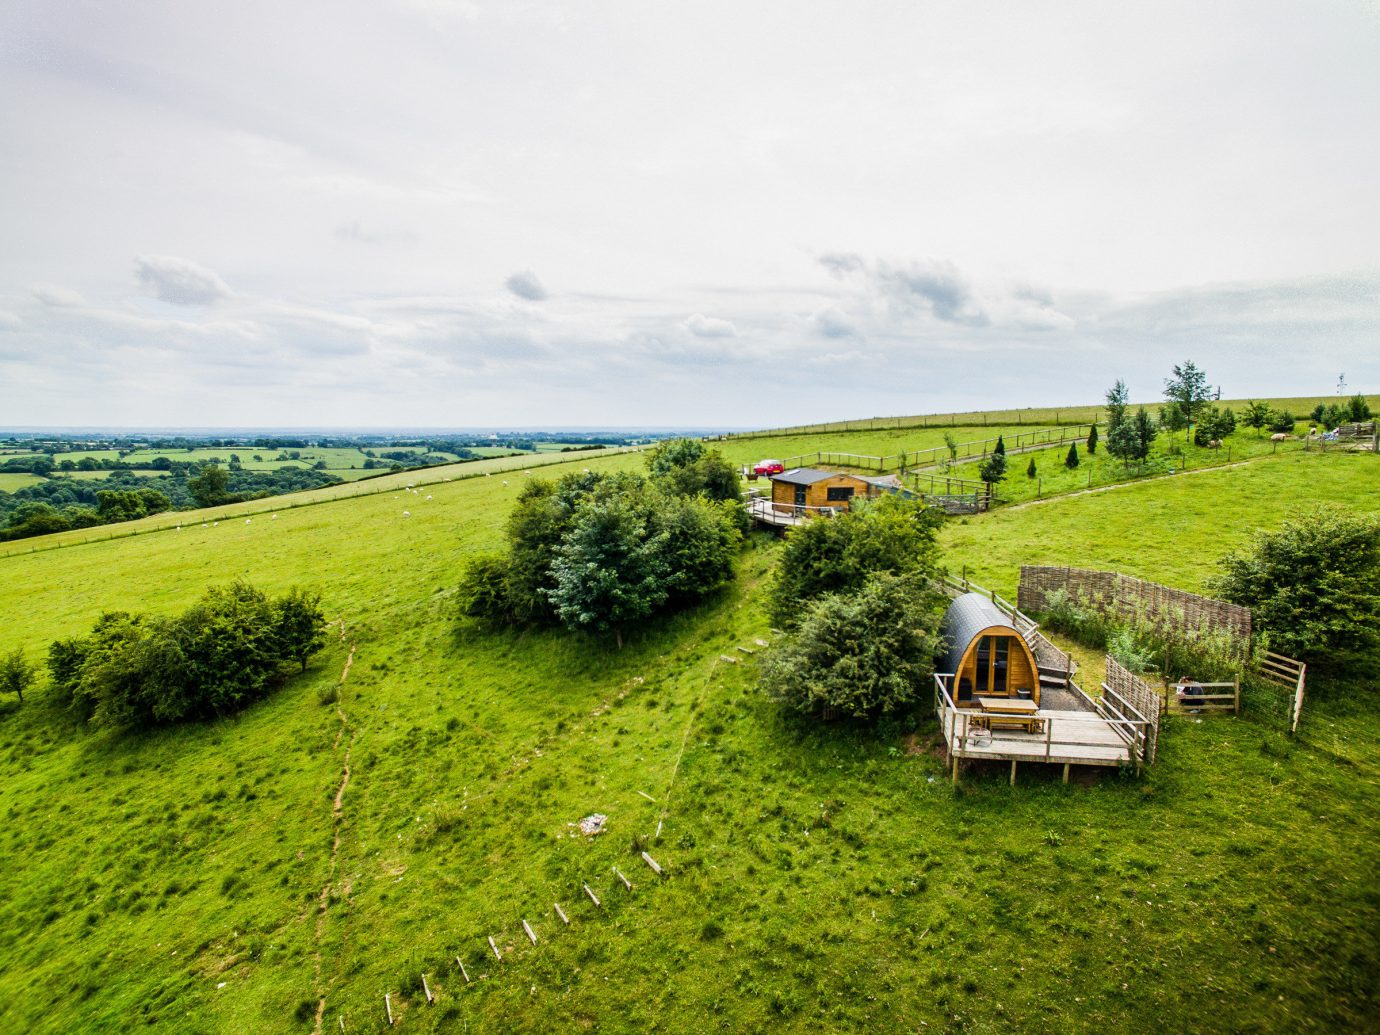 Glamping Outdoors + Adventure Trip Ideas grass sky outdoor field grassland green pasture Farm vegetation prairie hill rural area meadow plain tree grassy cloud landscape agriculture lush land lot hill station ecoregion steppe plant shrubland Village plantation plant community crop hillside highland